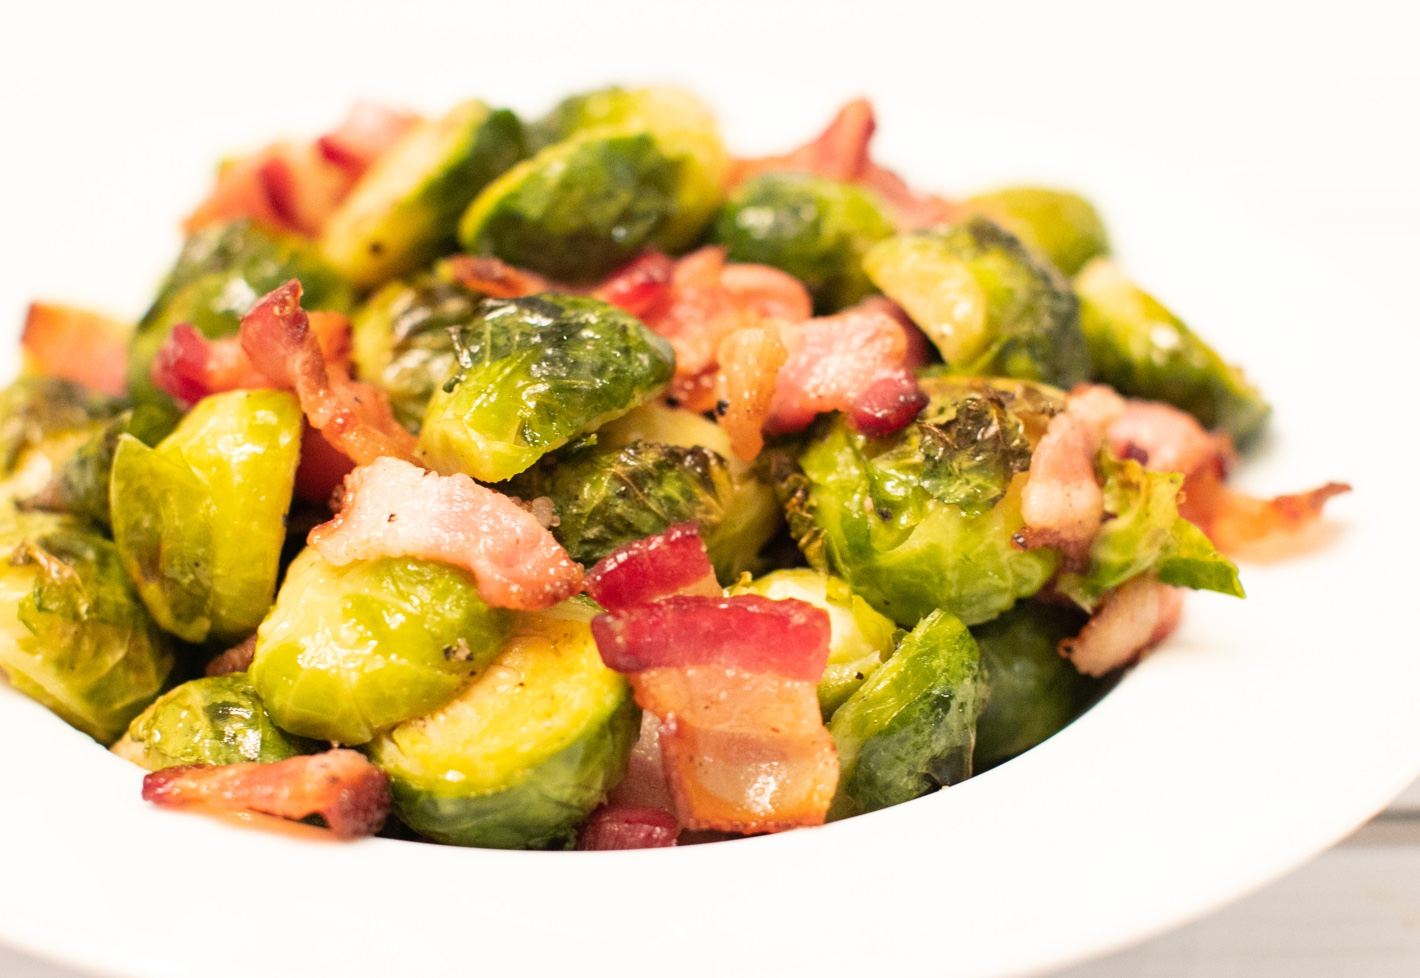 (Mostly) Bacon brussel sprouts, bacon and brussel sprouts dish in a white serving bowl.